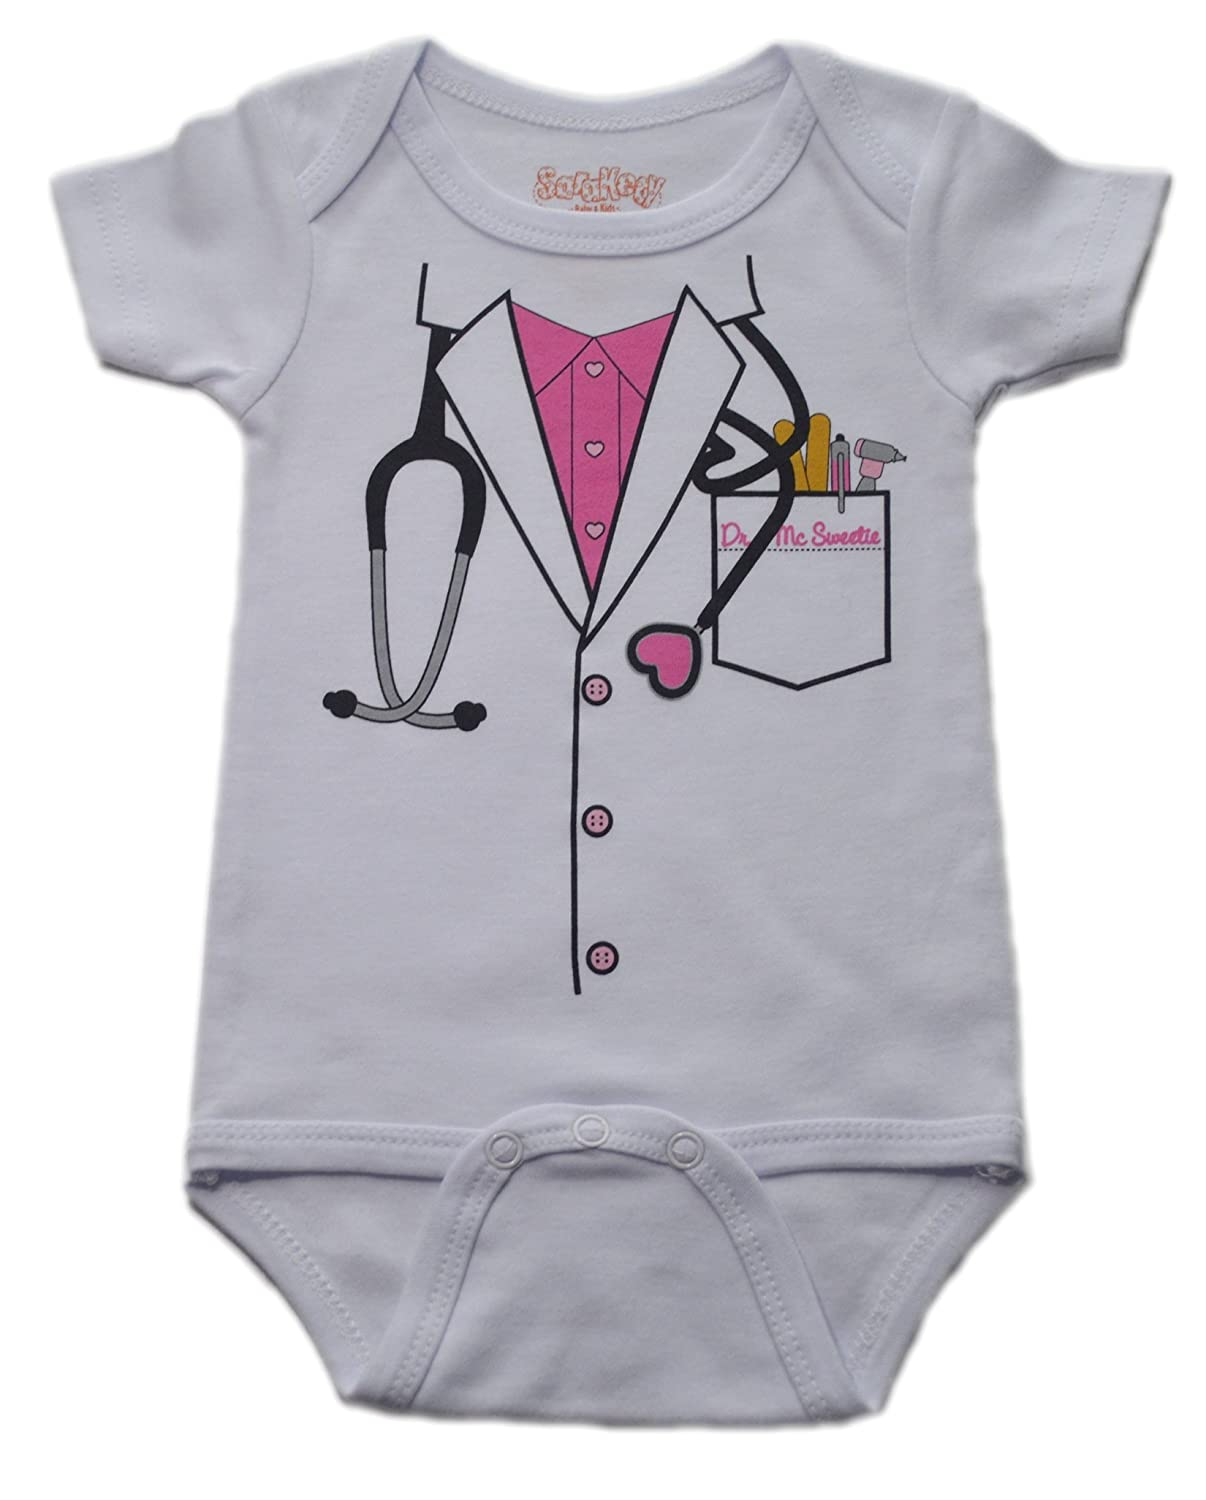 Just One More Car Part Baby Onesie multiple manufacturers available